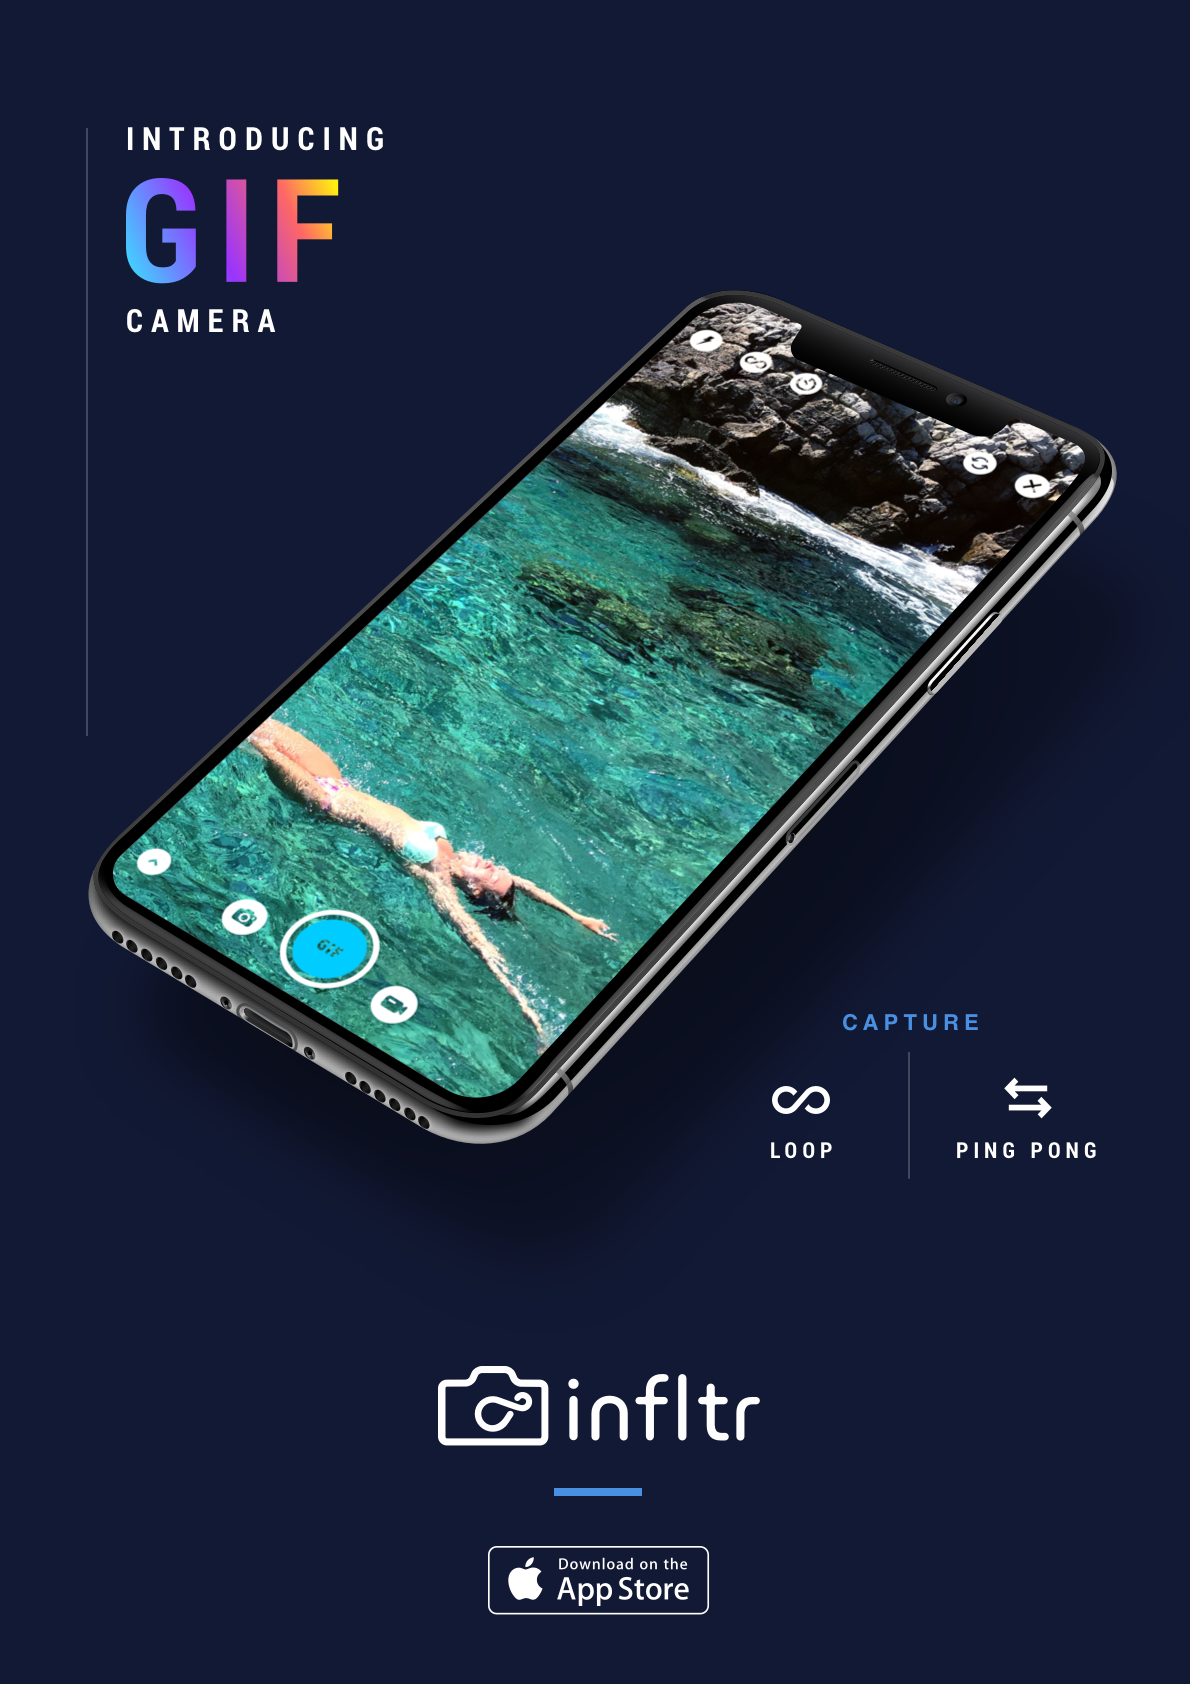 infltr Update Brings GIF Shooting Mode, New Editing Tools, More